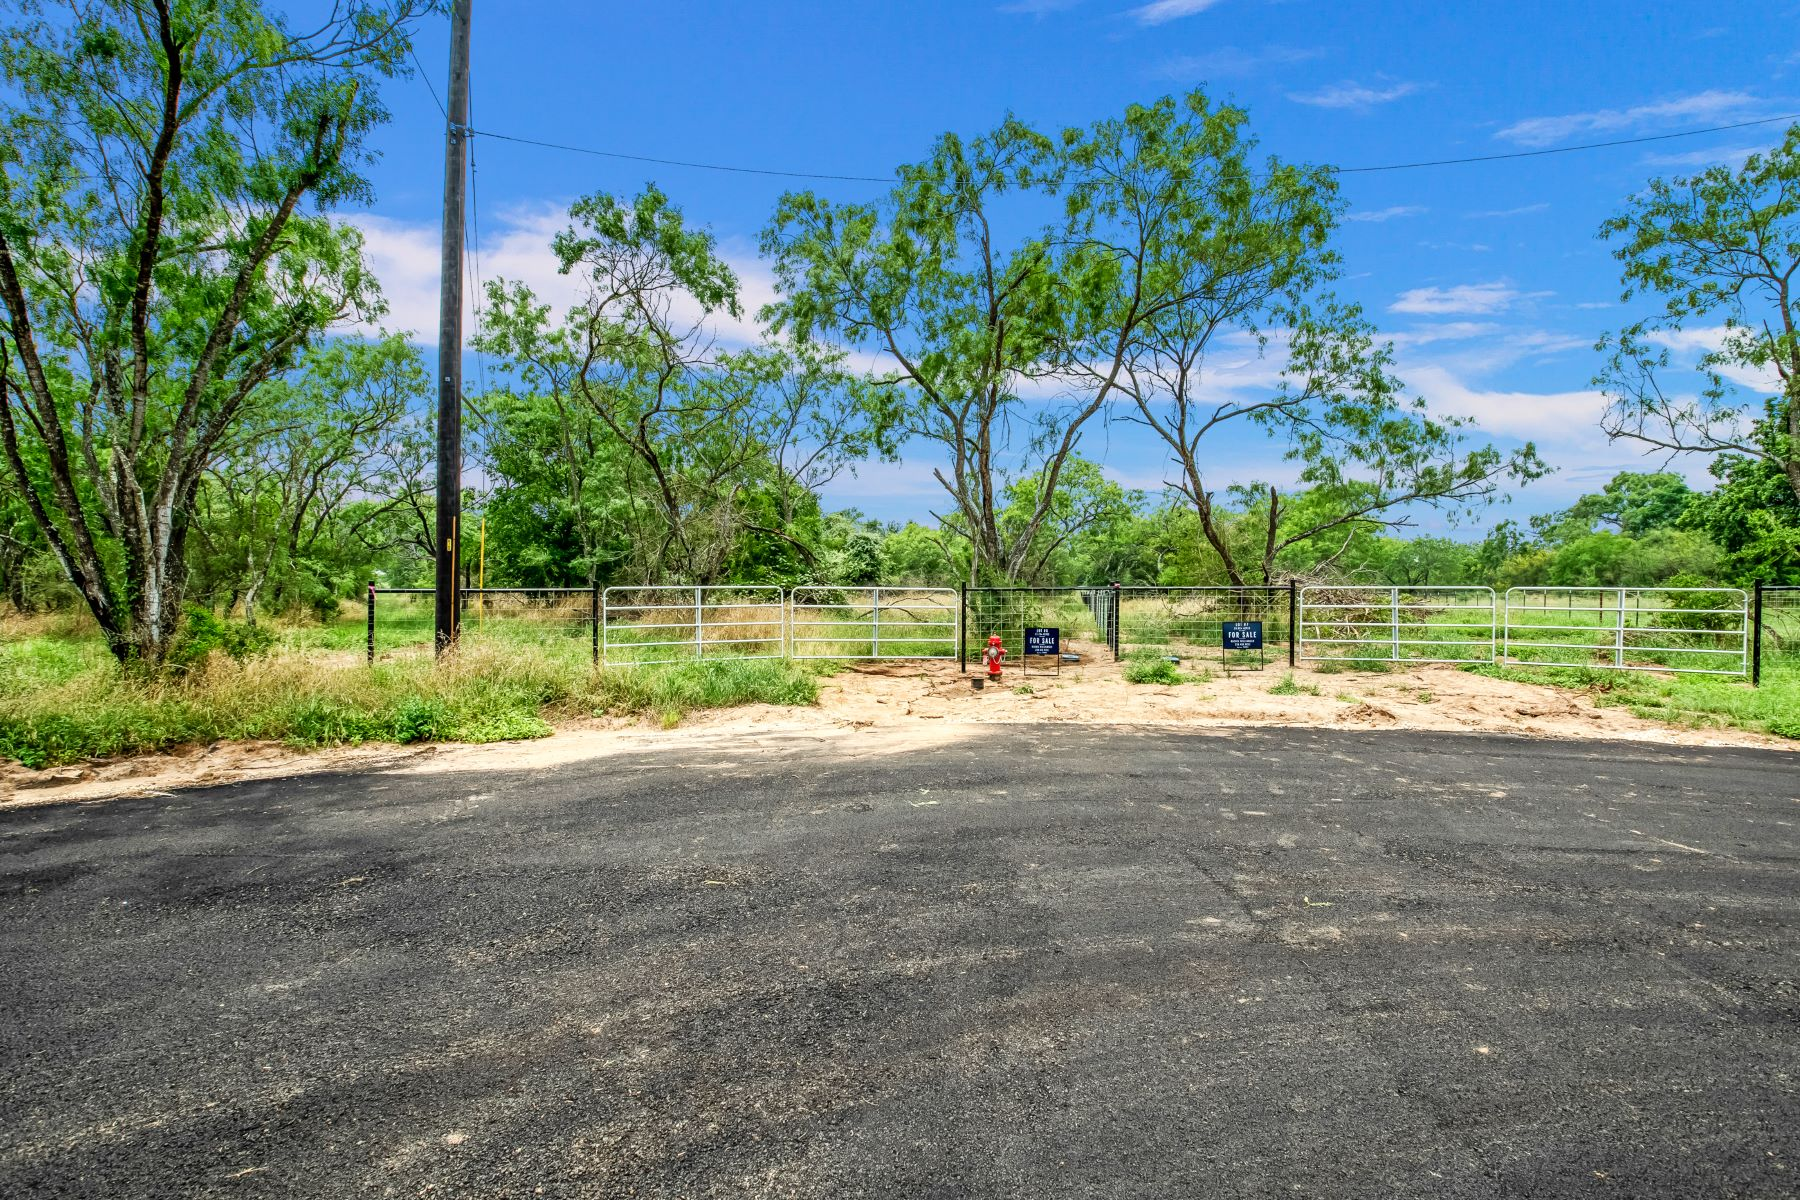 Land for Sale at New Development In A Supreme Location 14604 Silesia Drive Lot 8 St. Hedwig, Texas 78152 United States